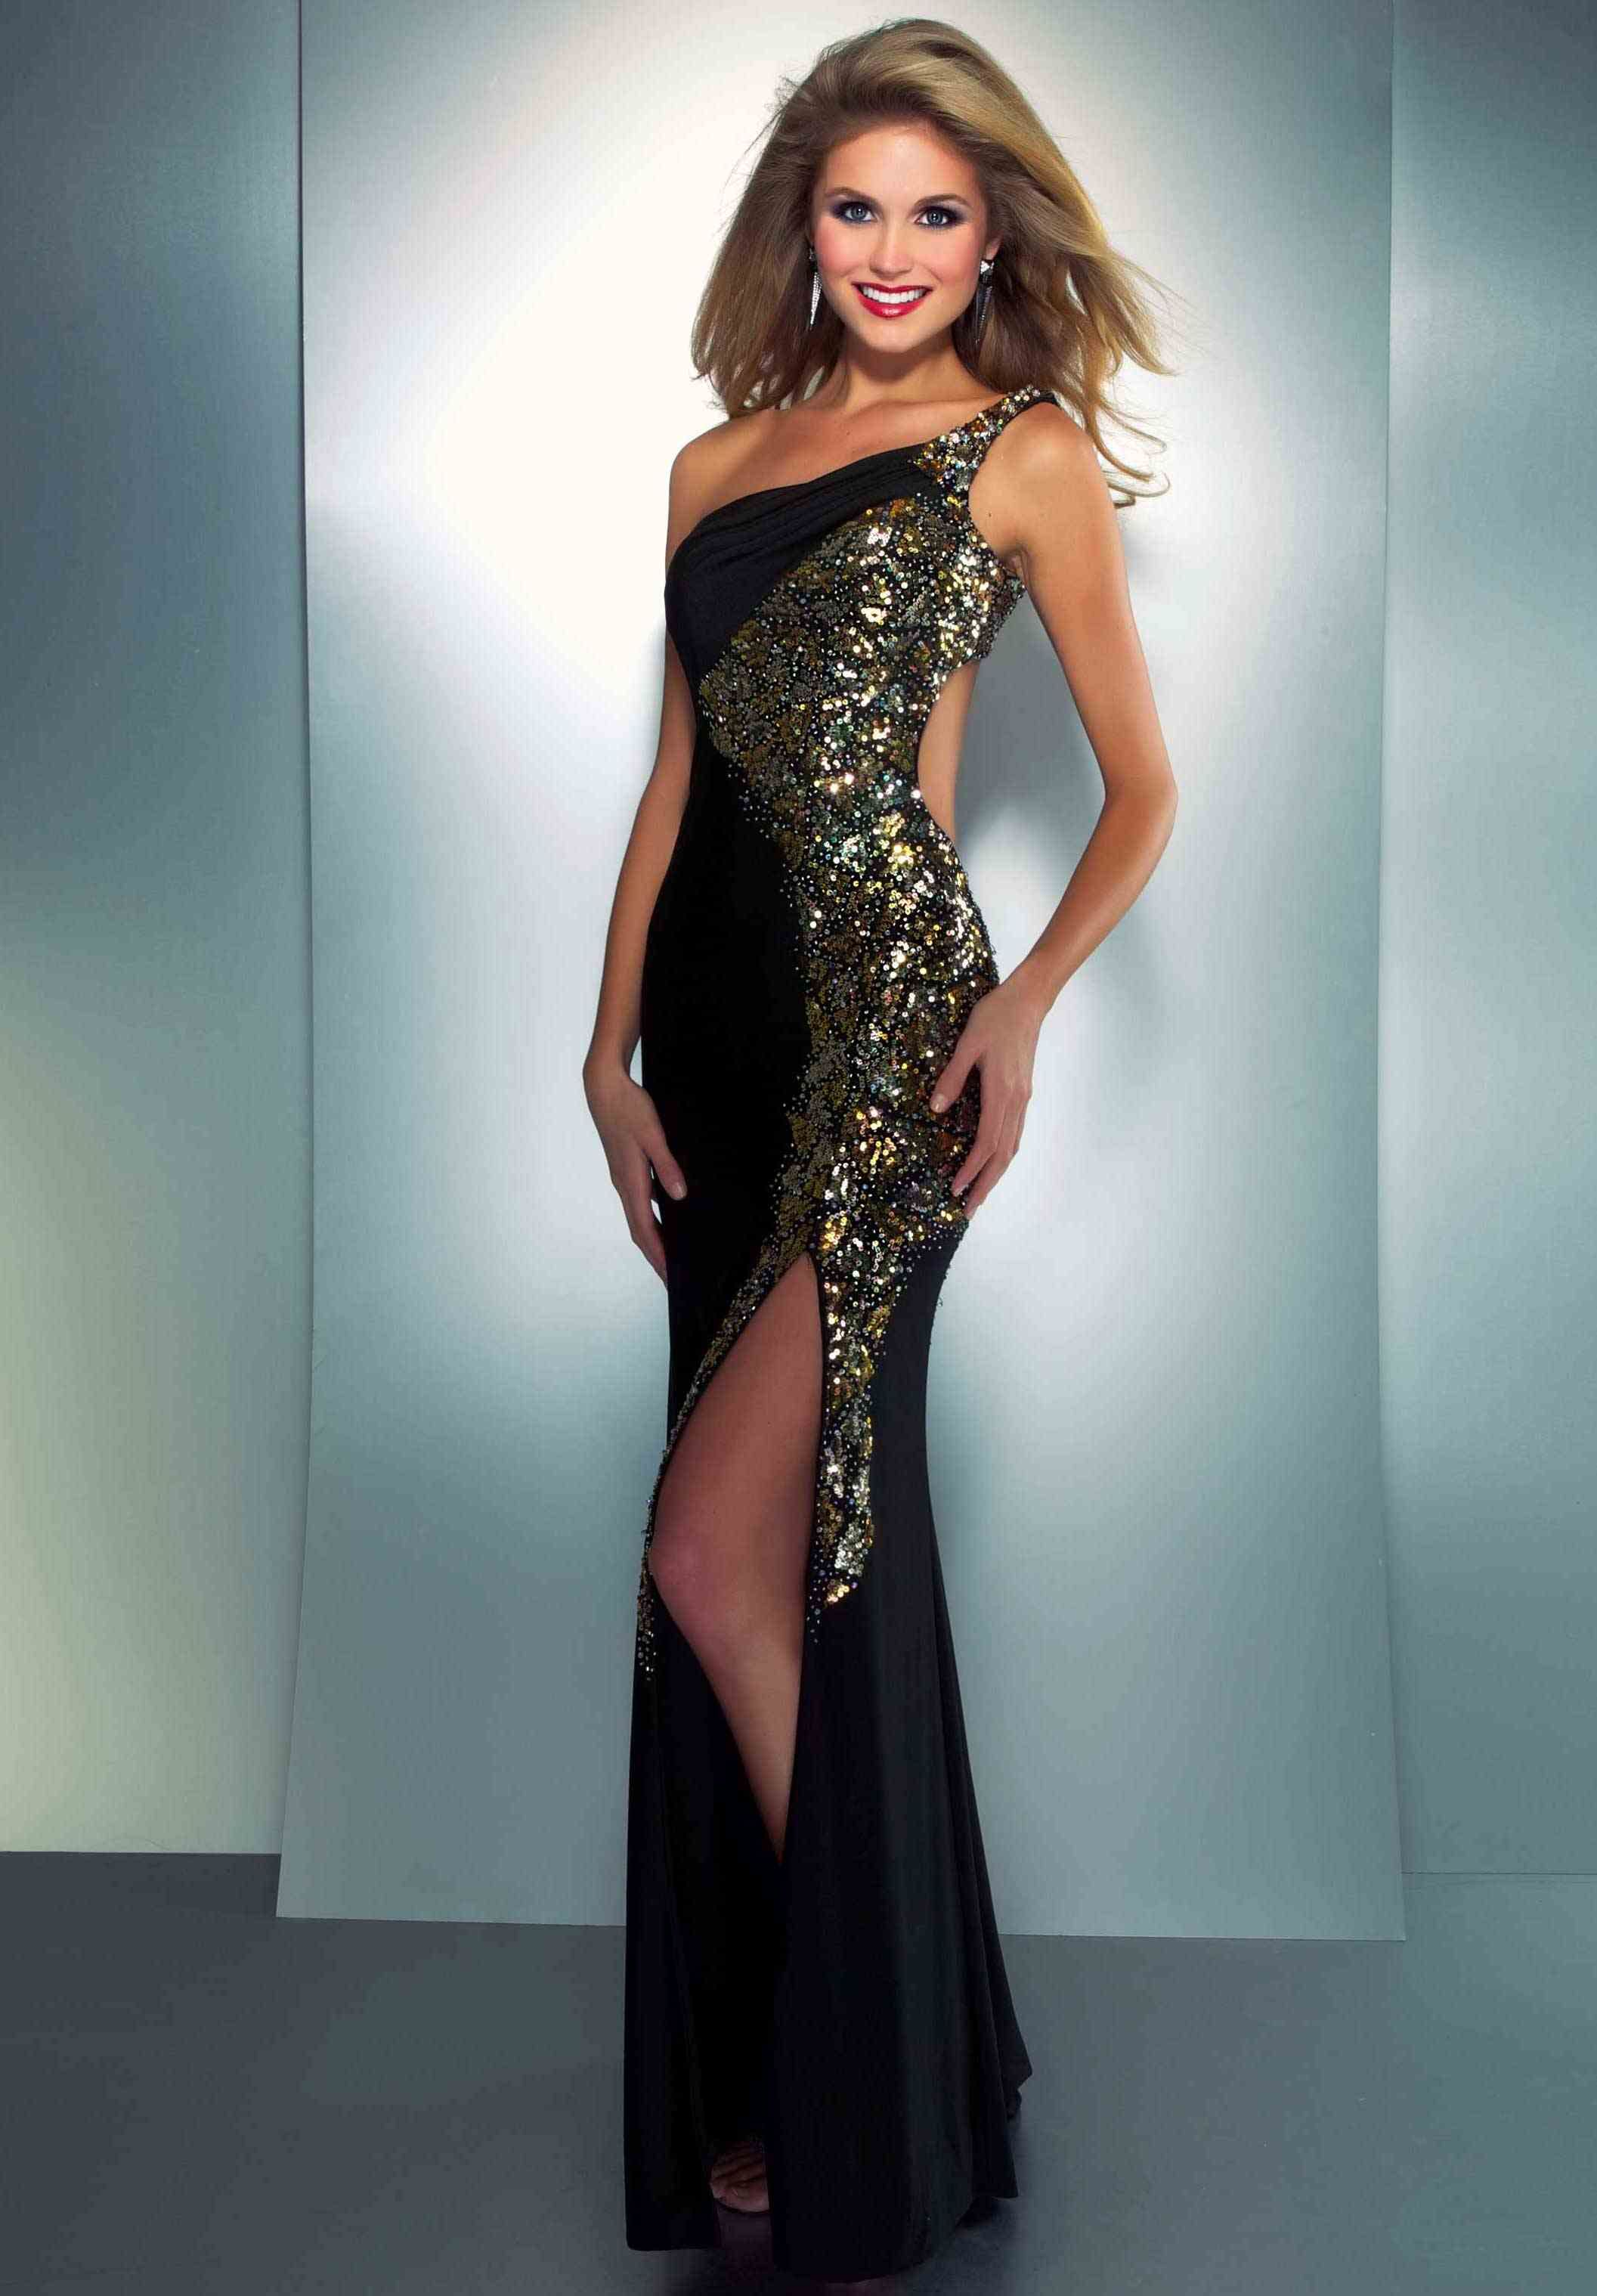 Funky Black Gold Prom Dress Collection - All Wedding Dresses ...